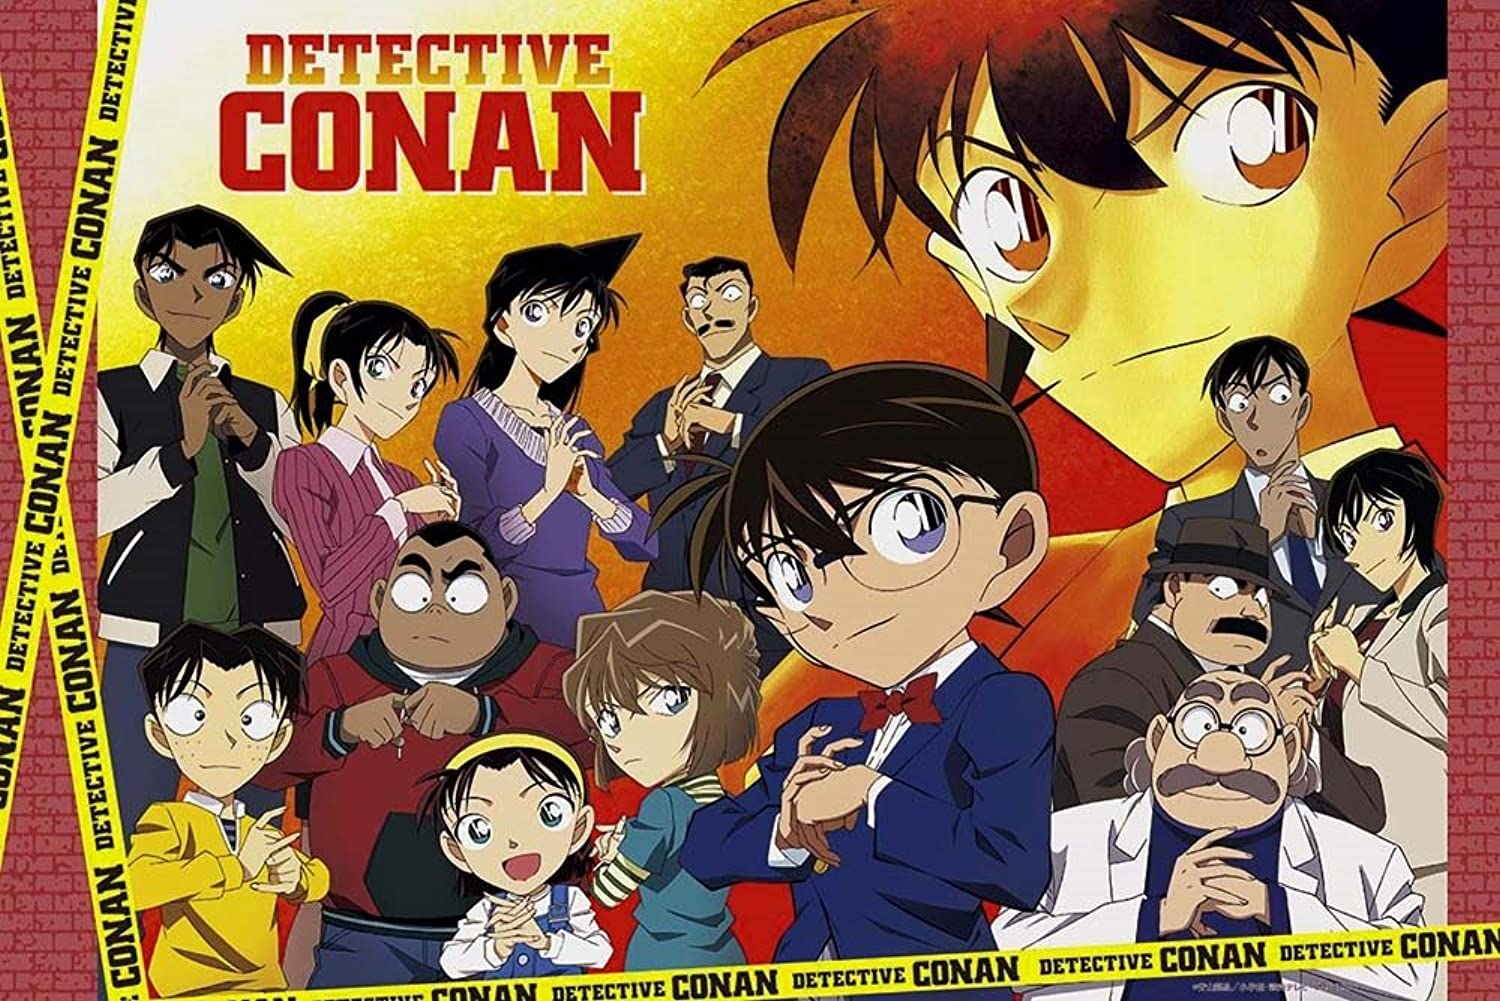 Challengers 11490 of 1000 Piece Detective Conan Master of Fate  Puzzle Aim by Epoch